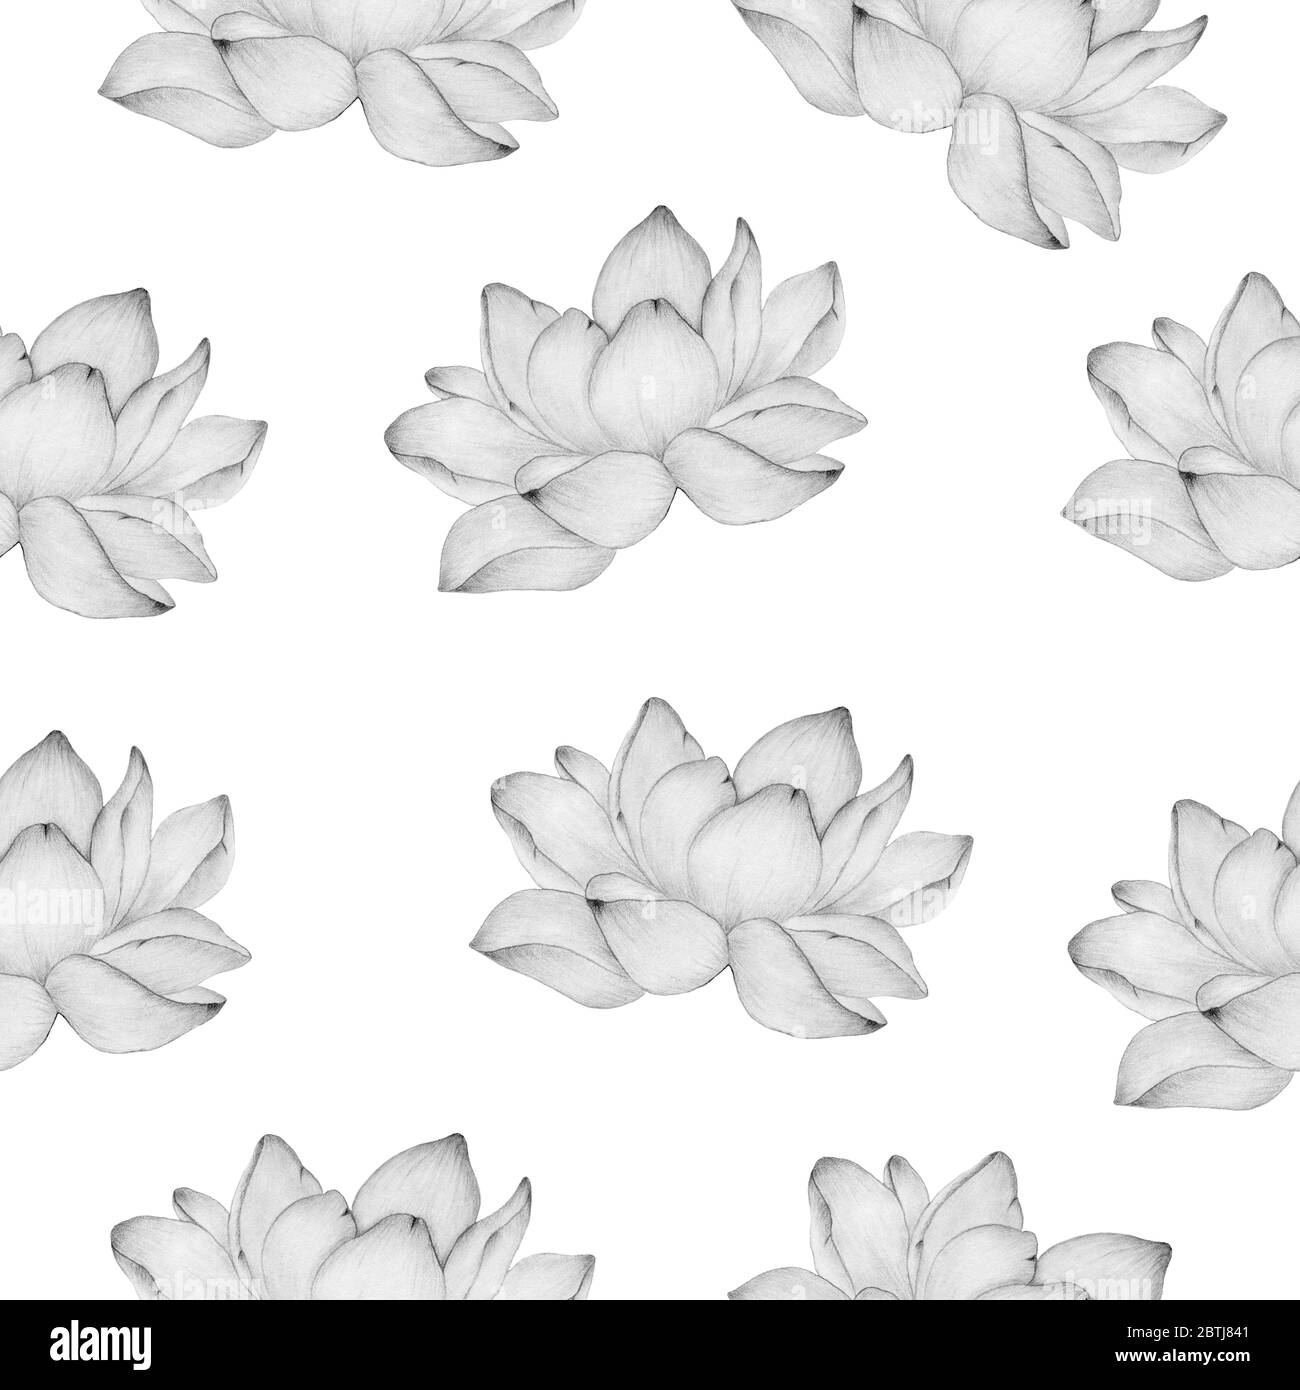 Seamless Floral Background With Lotus Flower In Pencil Drawing Simple And Elegant Floral Pattern For Fabric Wrapping Projects Or Backgrounds Stock Photo Alamy